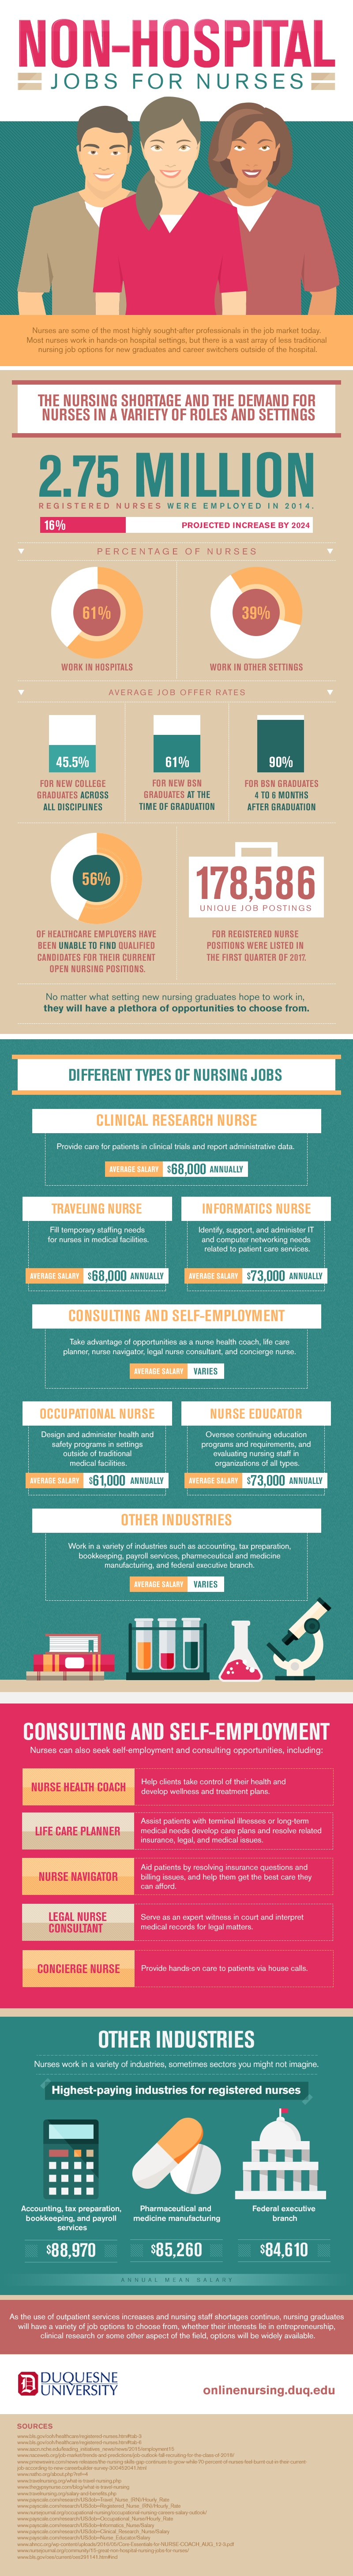 Infographic exploring non-hospital jobs for nurses